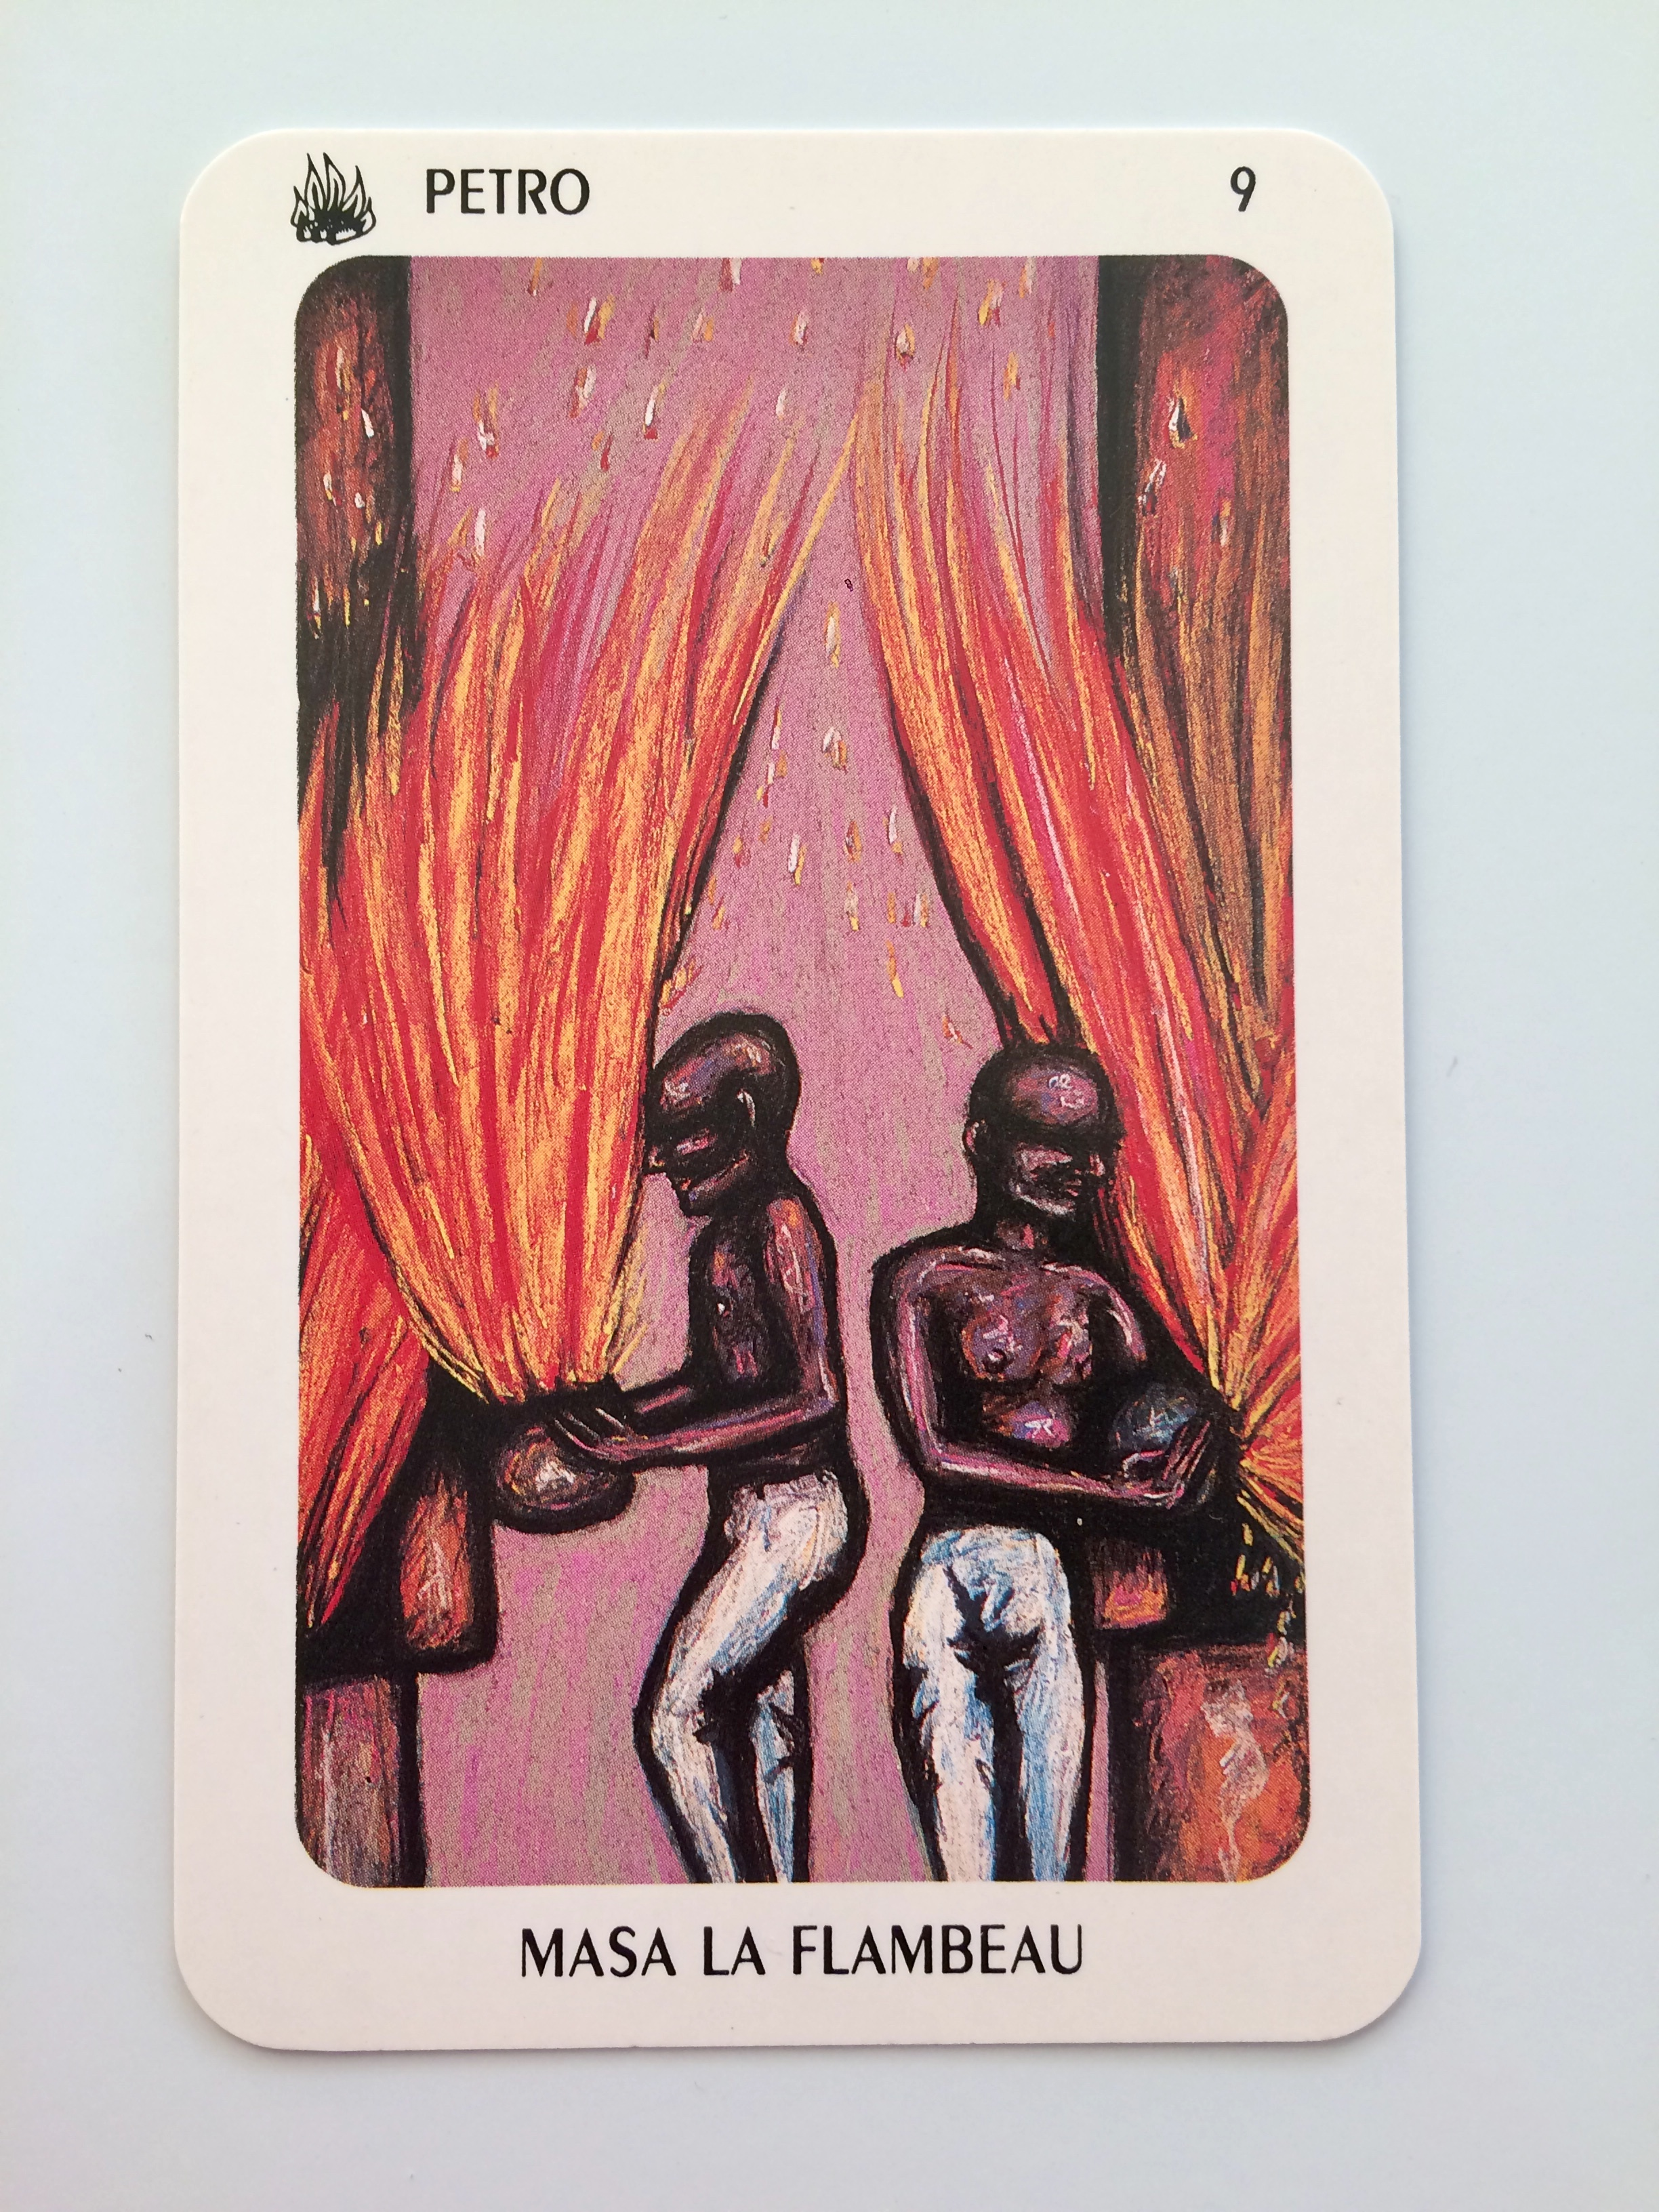 Petro - Nine - Masa La Flambeau from  The New Orleans Voodoo Tarot  deck